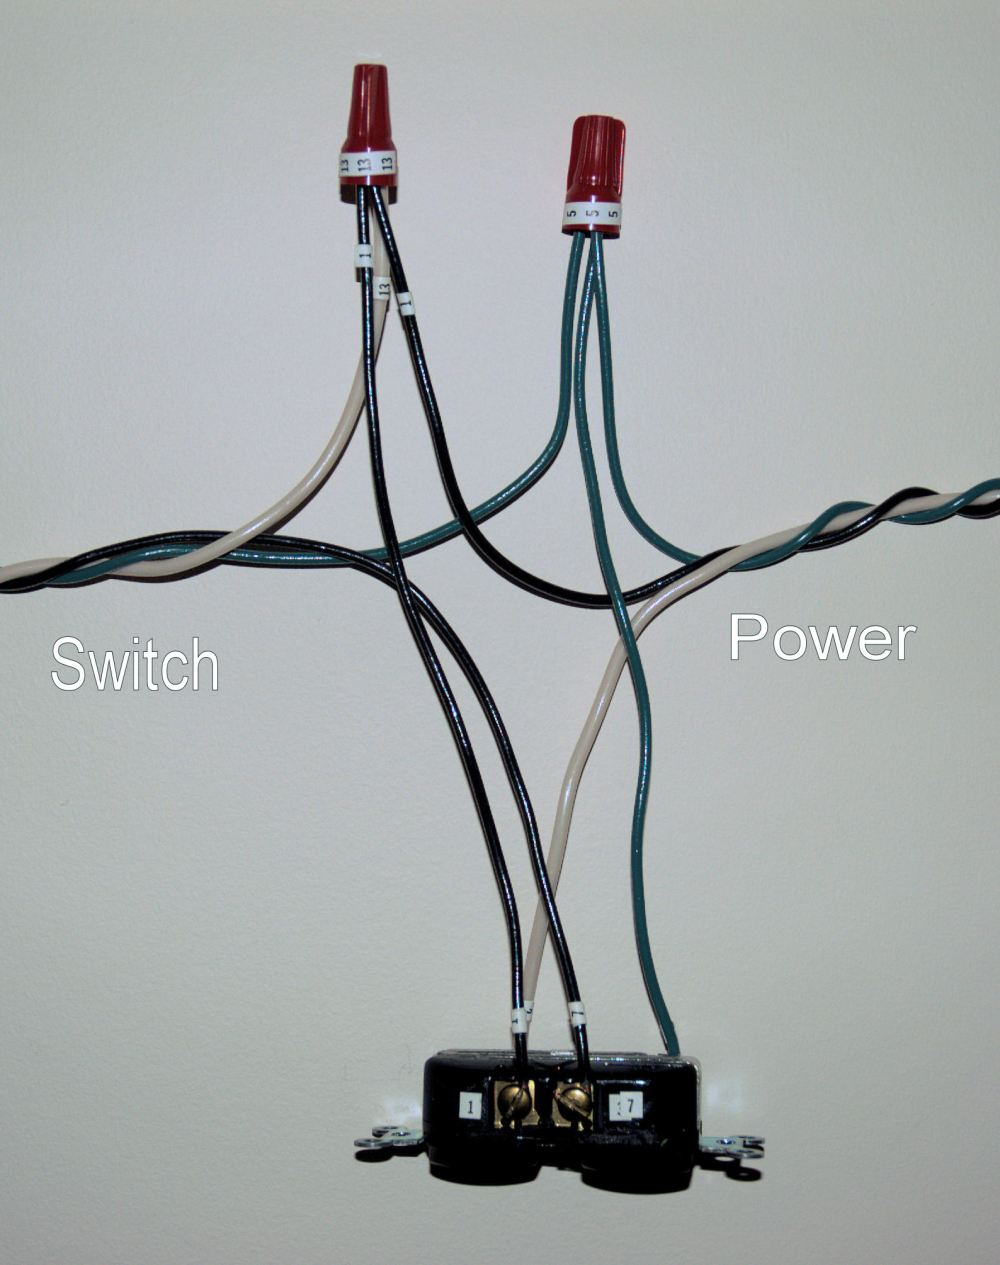 medium resolution of how to install a switch to control the top half of an outlet